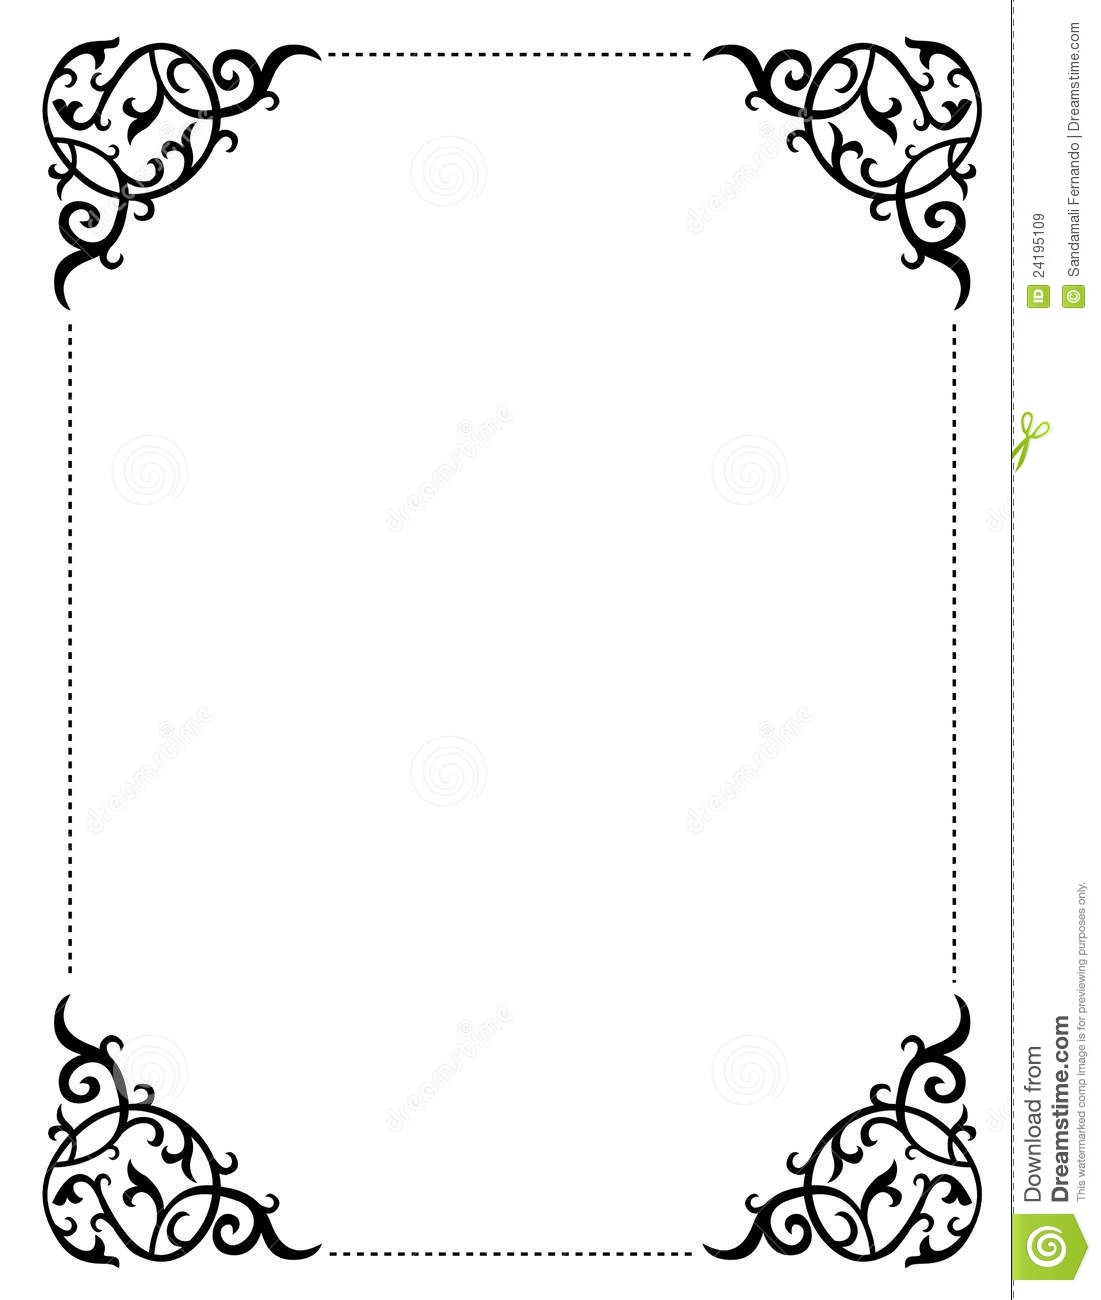 Printable Clipart Borders   Free Download Best Printable Clipart - Free Printable Borders